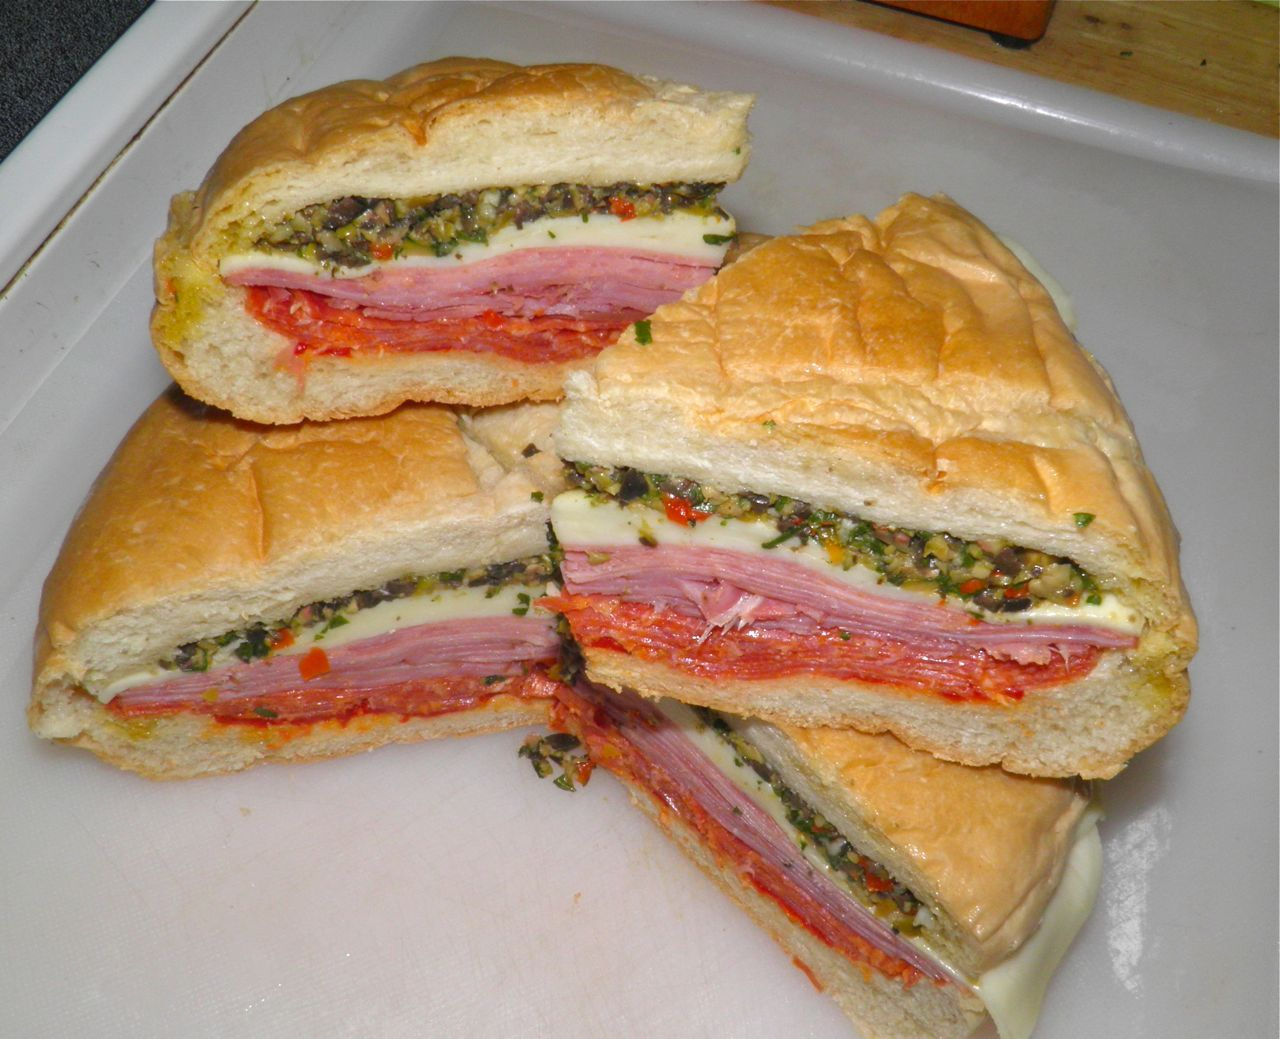 ... To The Arts: Picnic Recipe: Muffaletta, the sandwich you sit on